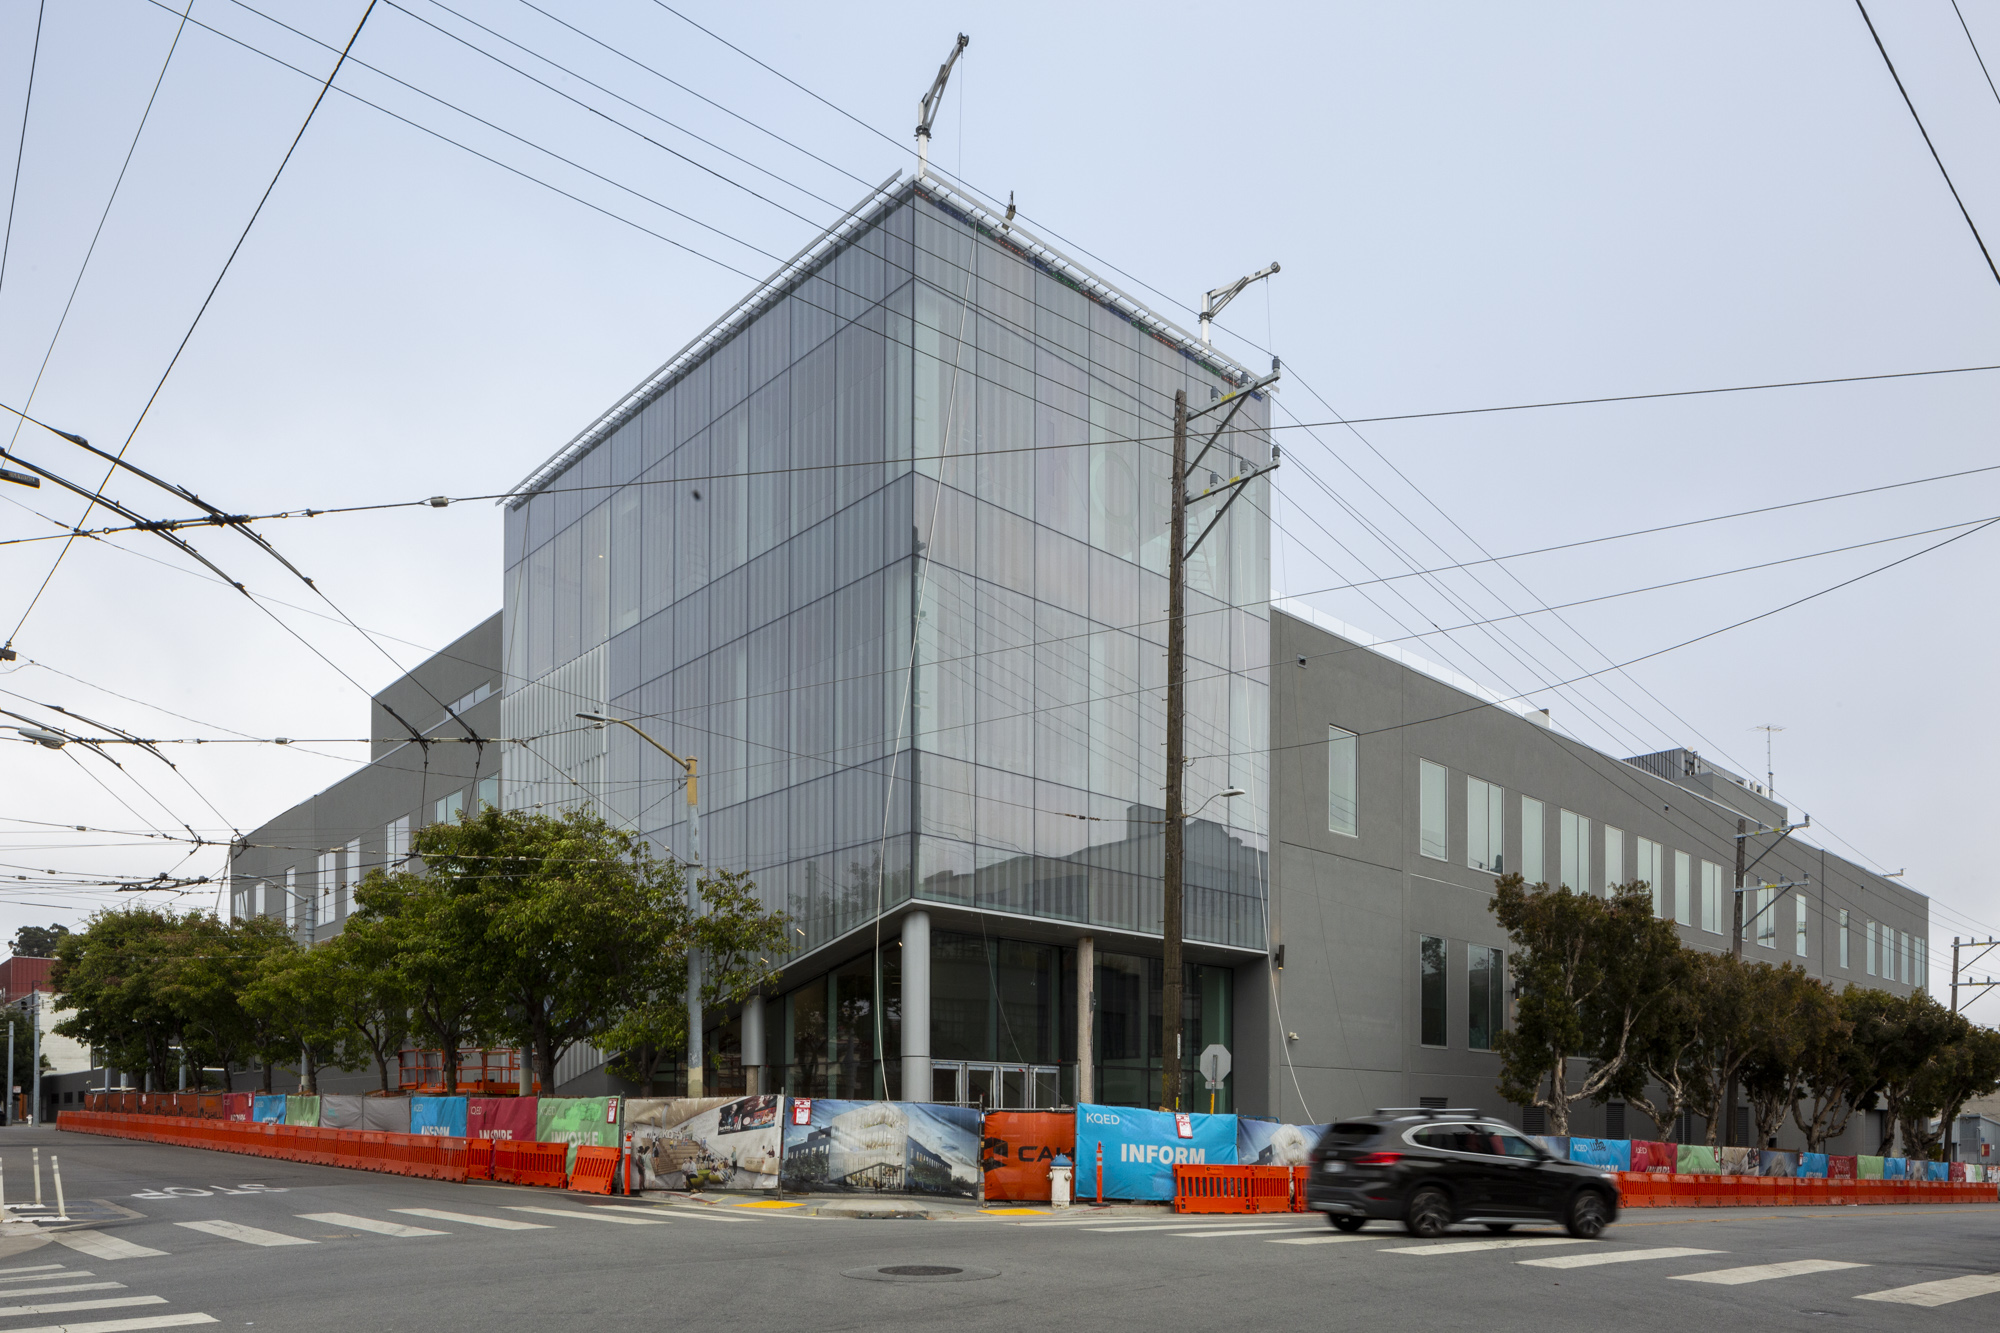 KQED Headquarters, image by Andrew Campbell Nelson